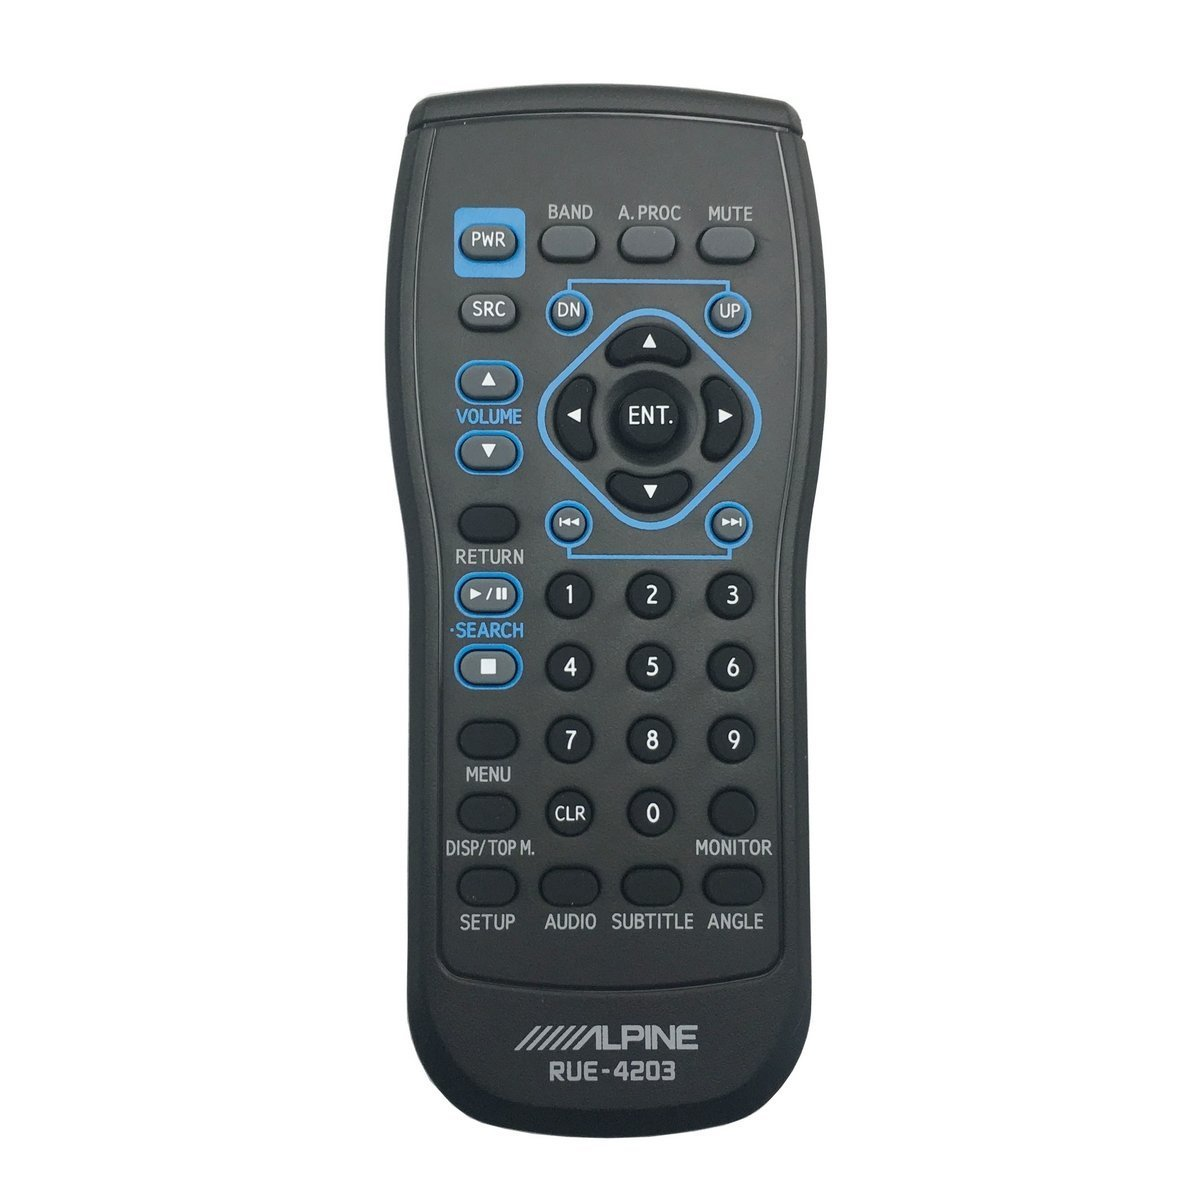 hight resolution of alpine rue 4203 remote control for iva w200 iva w203 iva d310